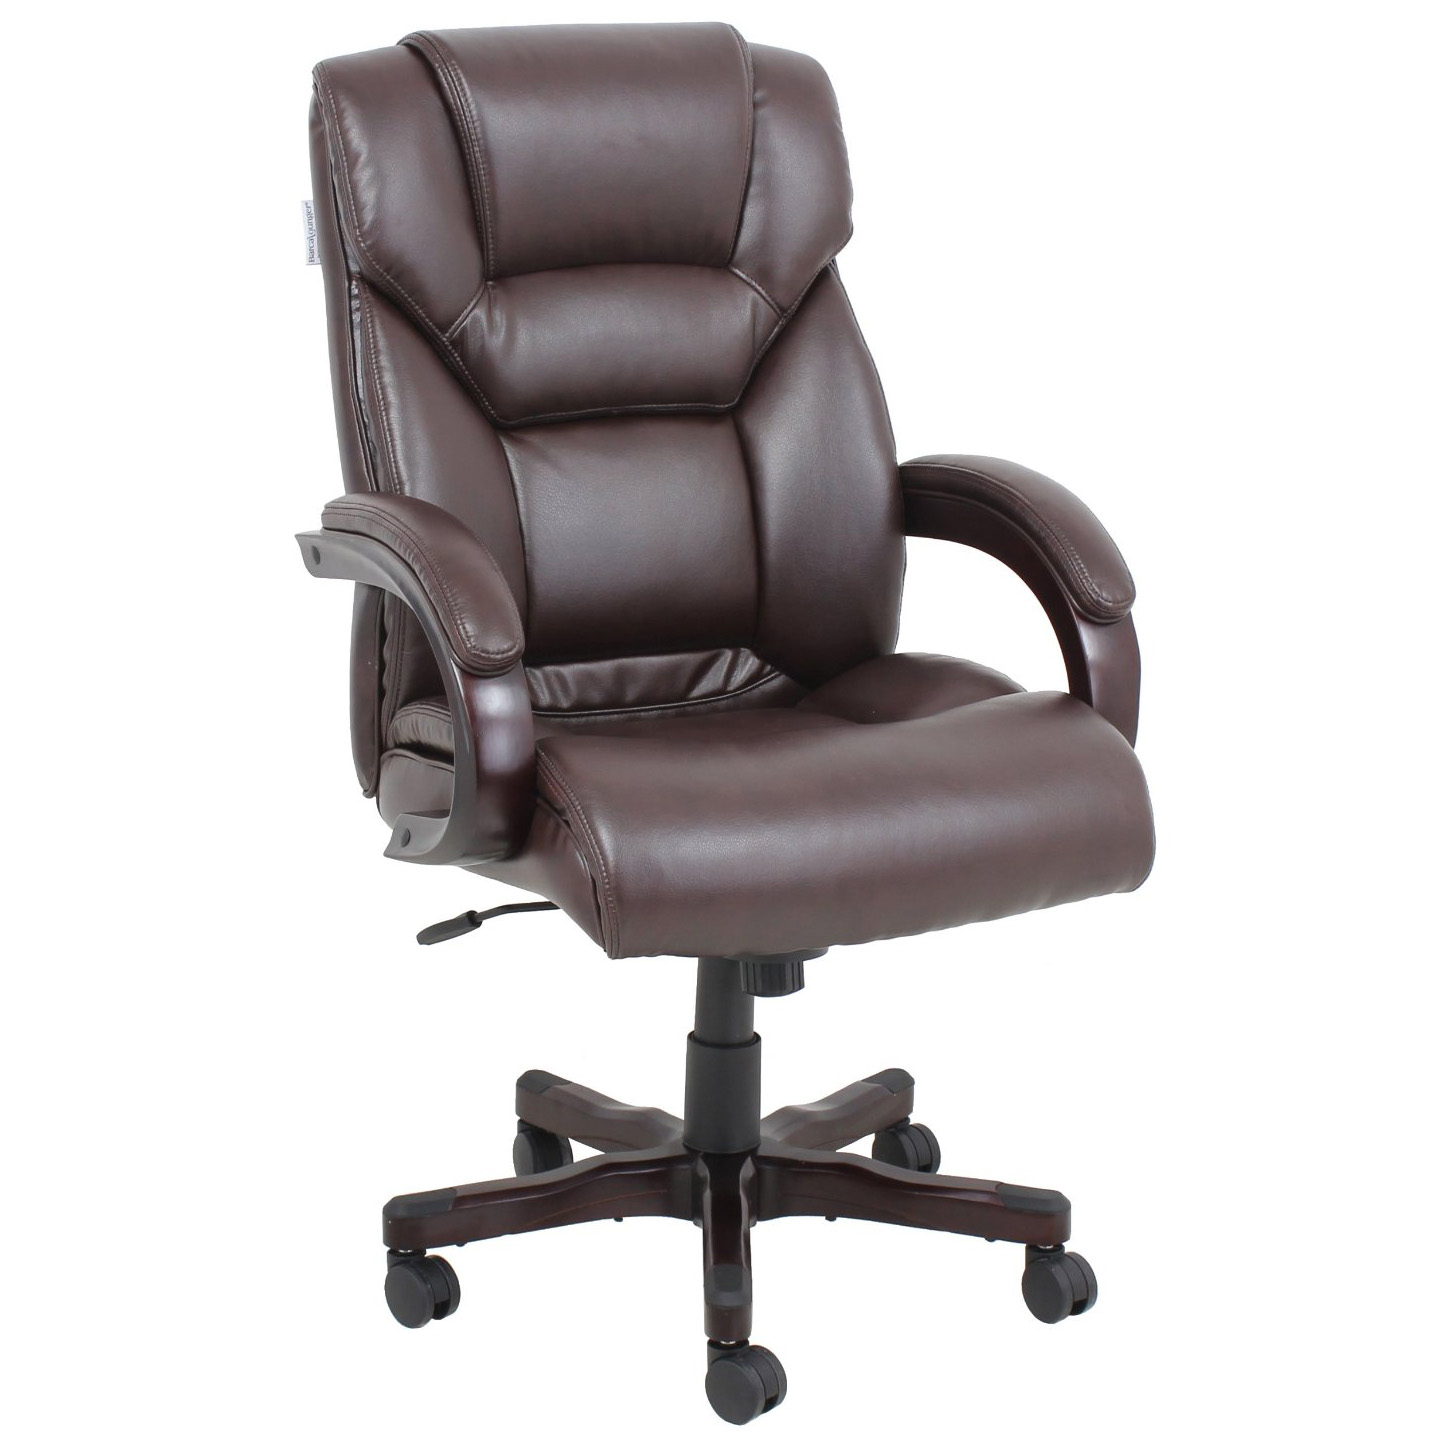 Barcalounger Neptune II Home Office Desk Chair Recliner